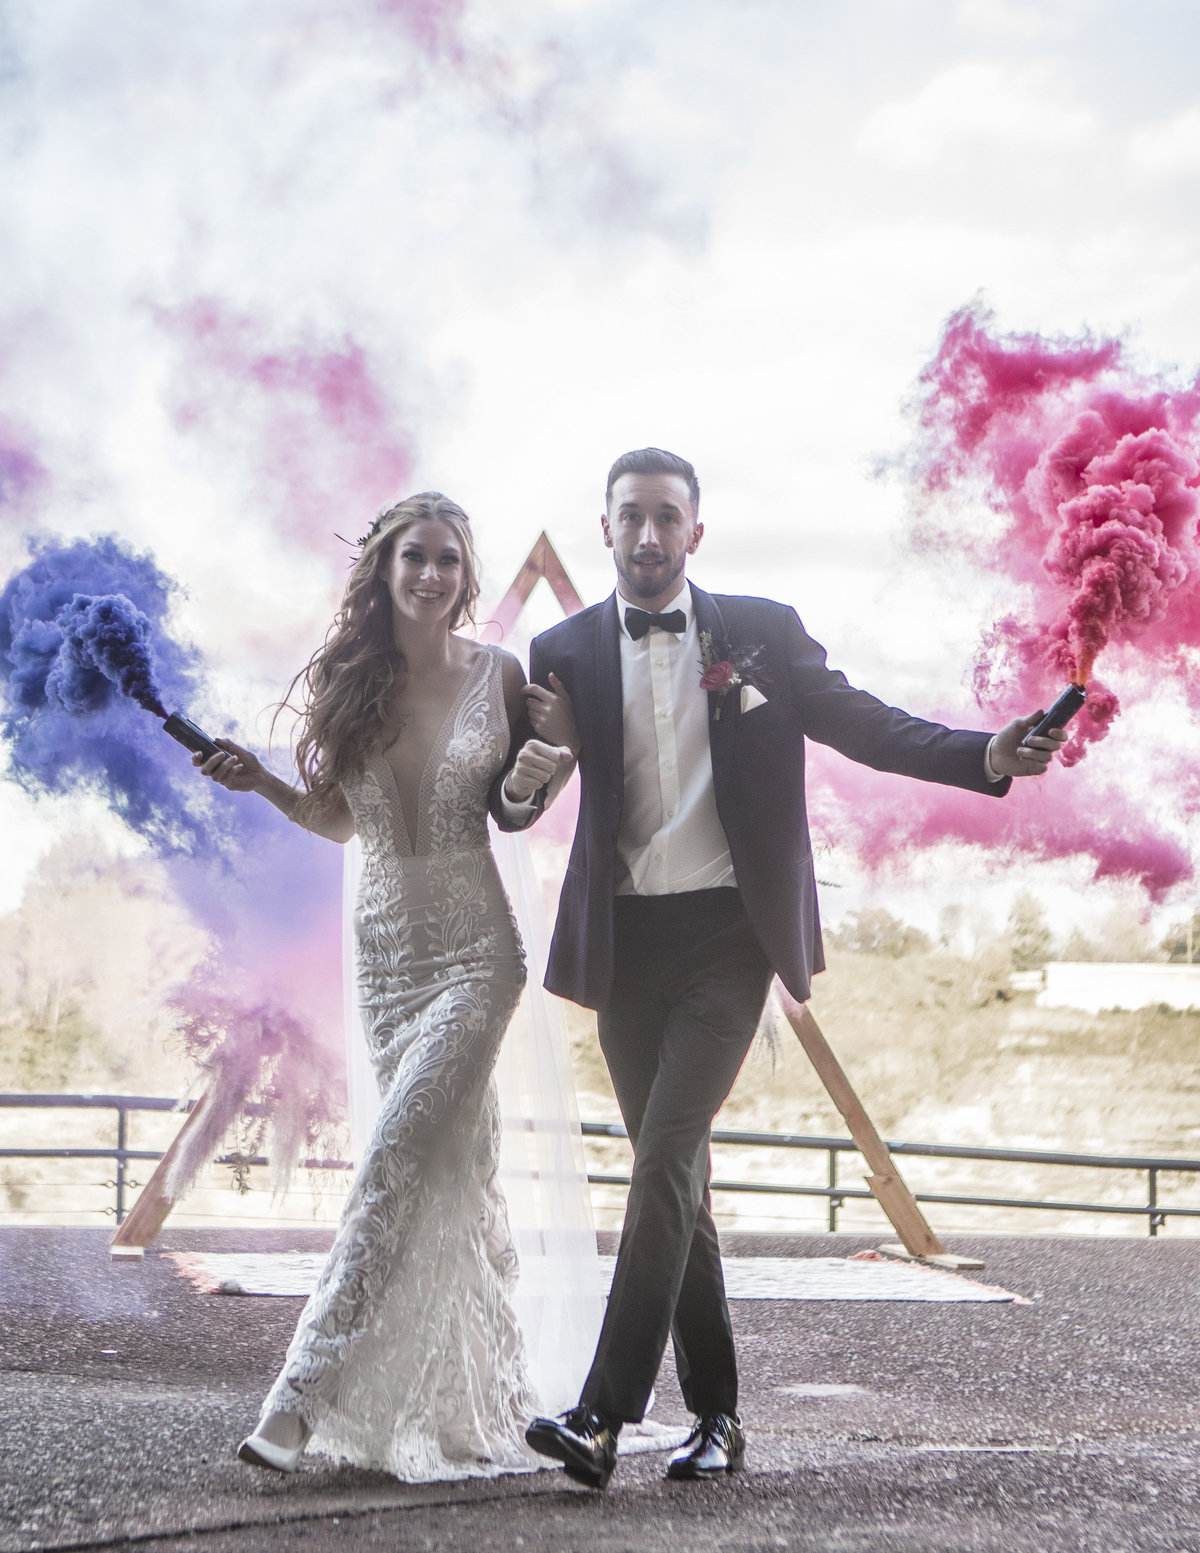 Wedding Smoke Bomb Exit - Verve Event Co (3)